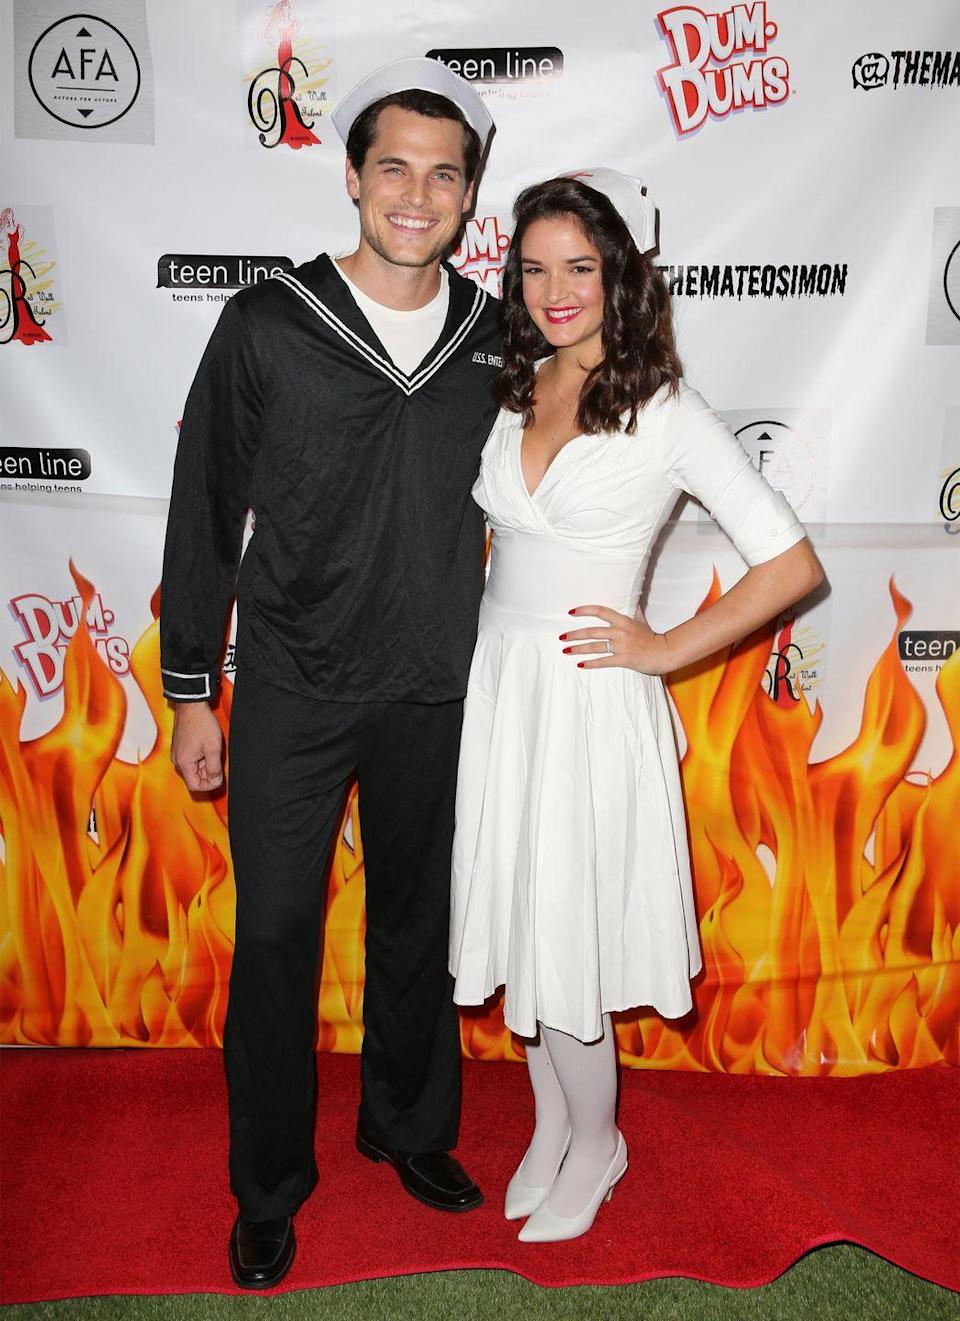 <p>Actors Bryan Lillis and Chelsea Ricketts showed up to the Mateo Simon's Annual Charity Halloween event in 2018 dressed as a WWII soldier and attending nurse. </p>